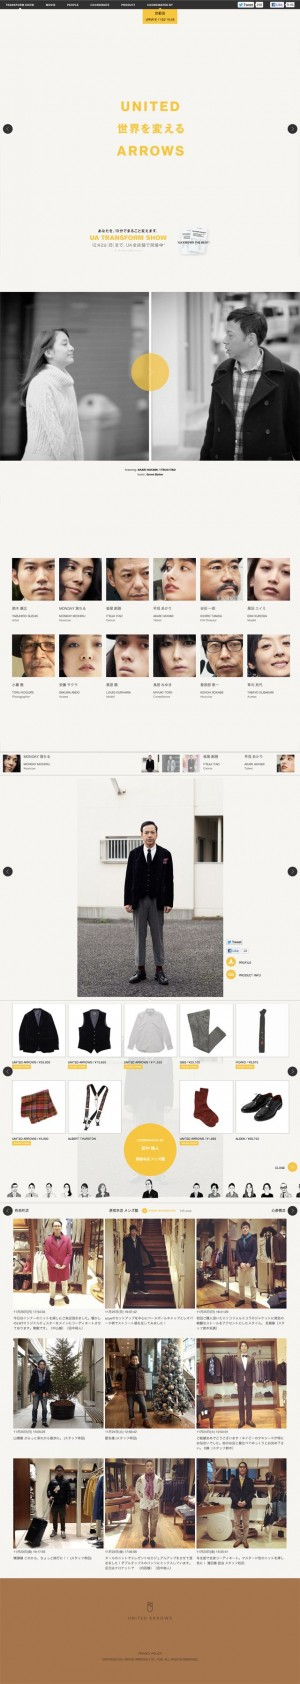 UNITED Arrows Japan